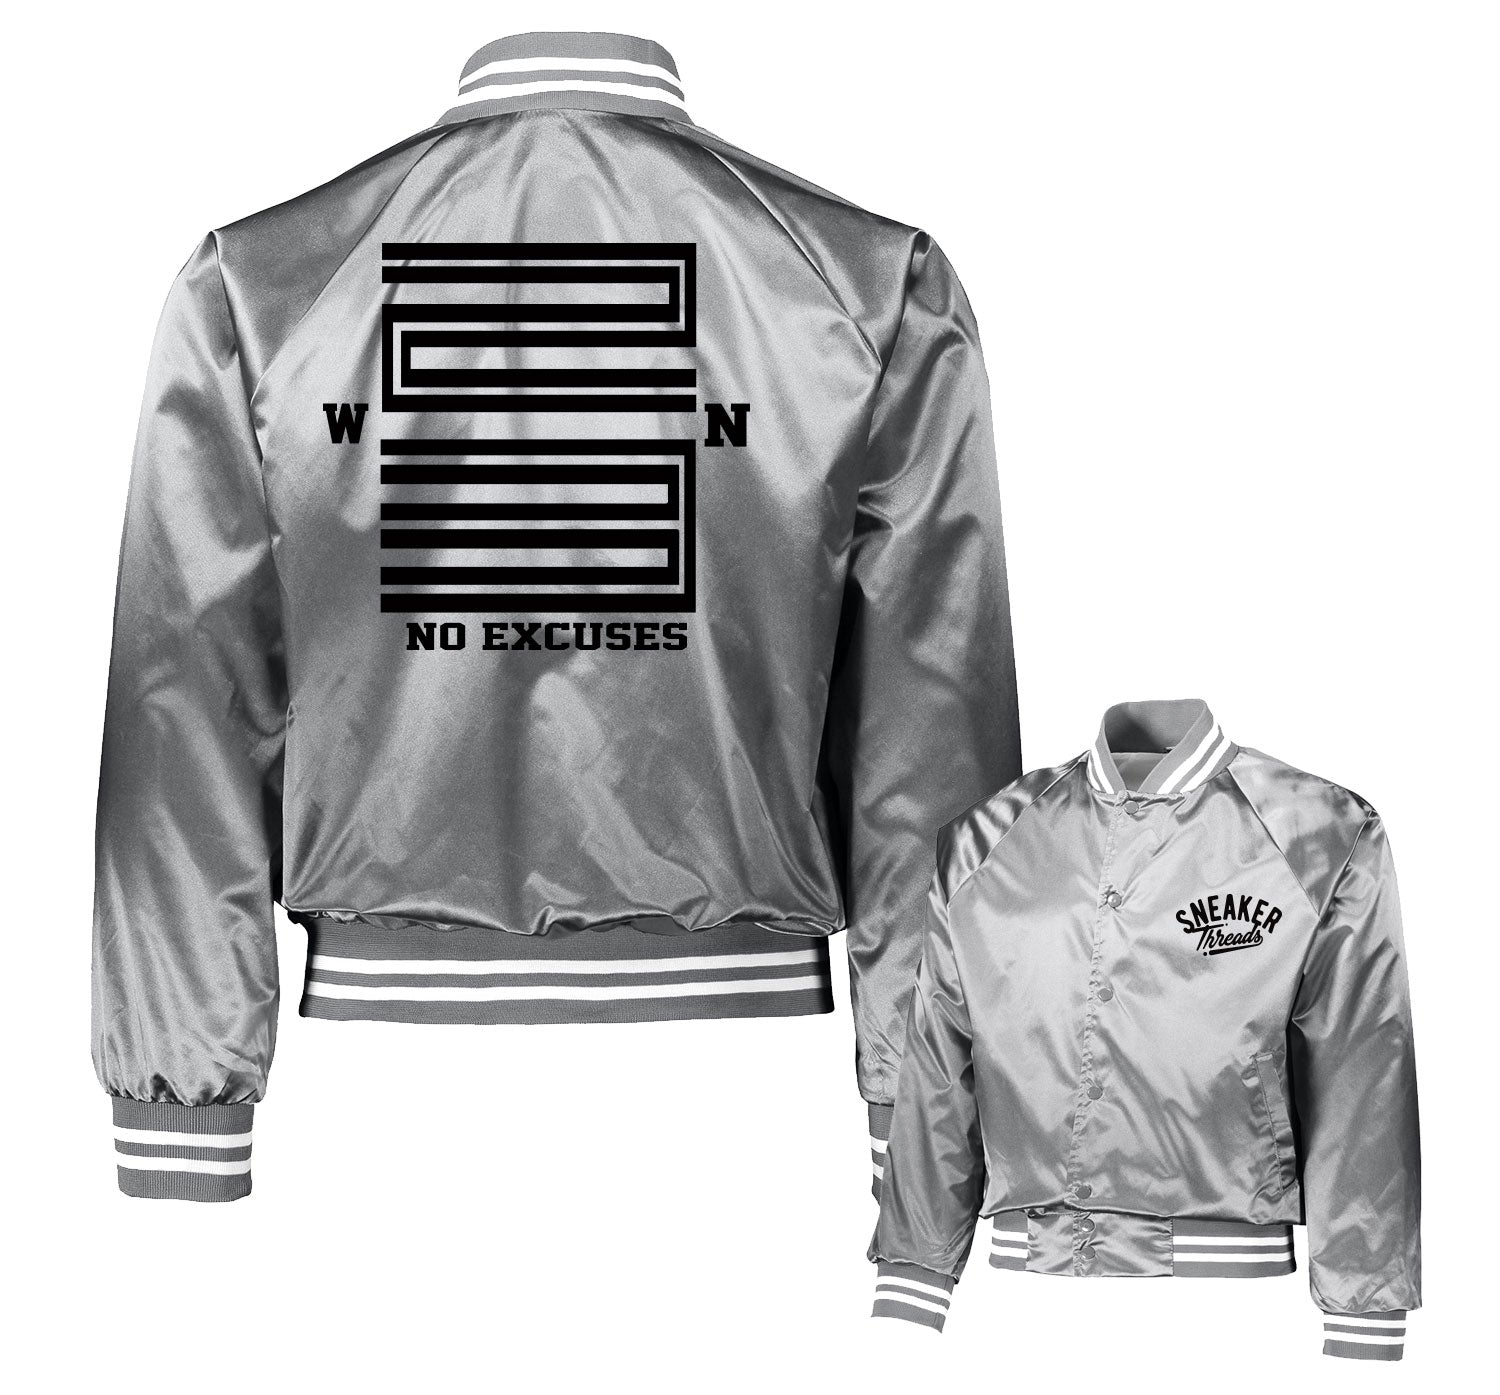 Jordan 11 Metallic Silver WIN Jacket